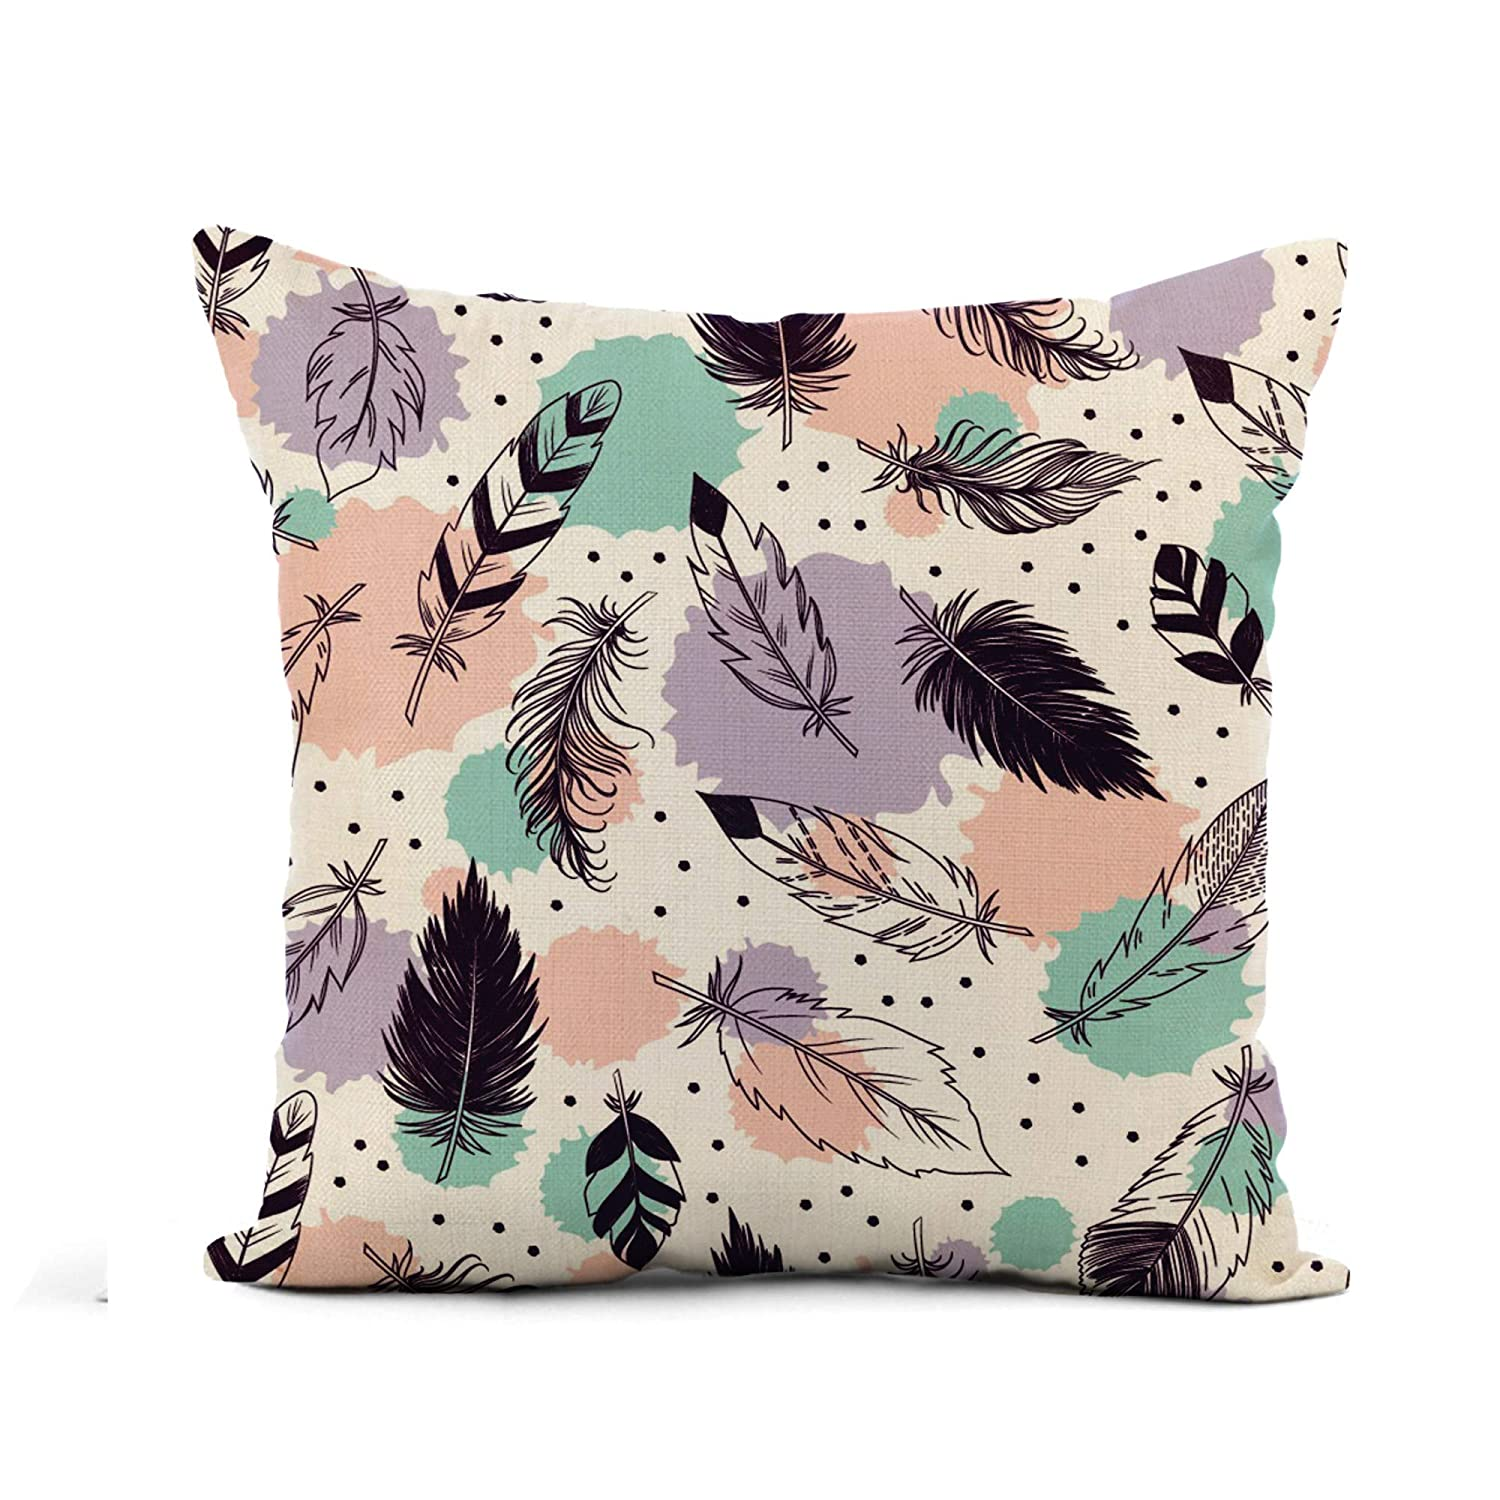 Buy Awowee Flax Throw Pillow Cover Abstract Feathers Beautiful Beauty Bird Color Drawing Elegance Flying 20x20 Inches Pillowcase Home Decor Square Cotton Linen Pillow Case Cushion Cover Online At Low Prices In